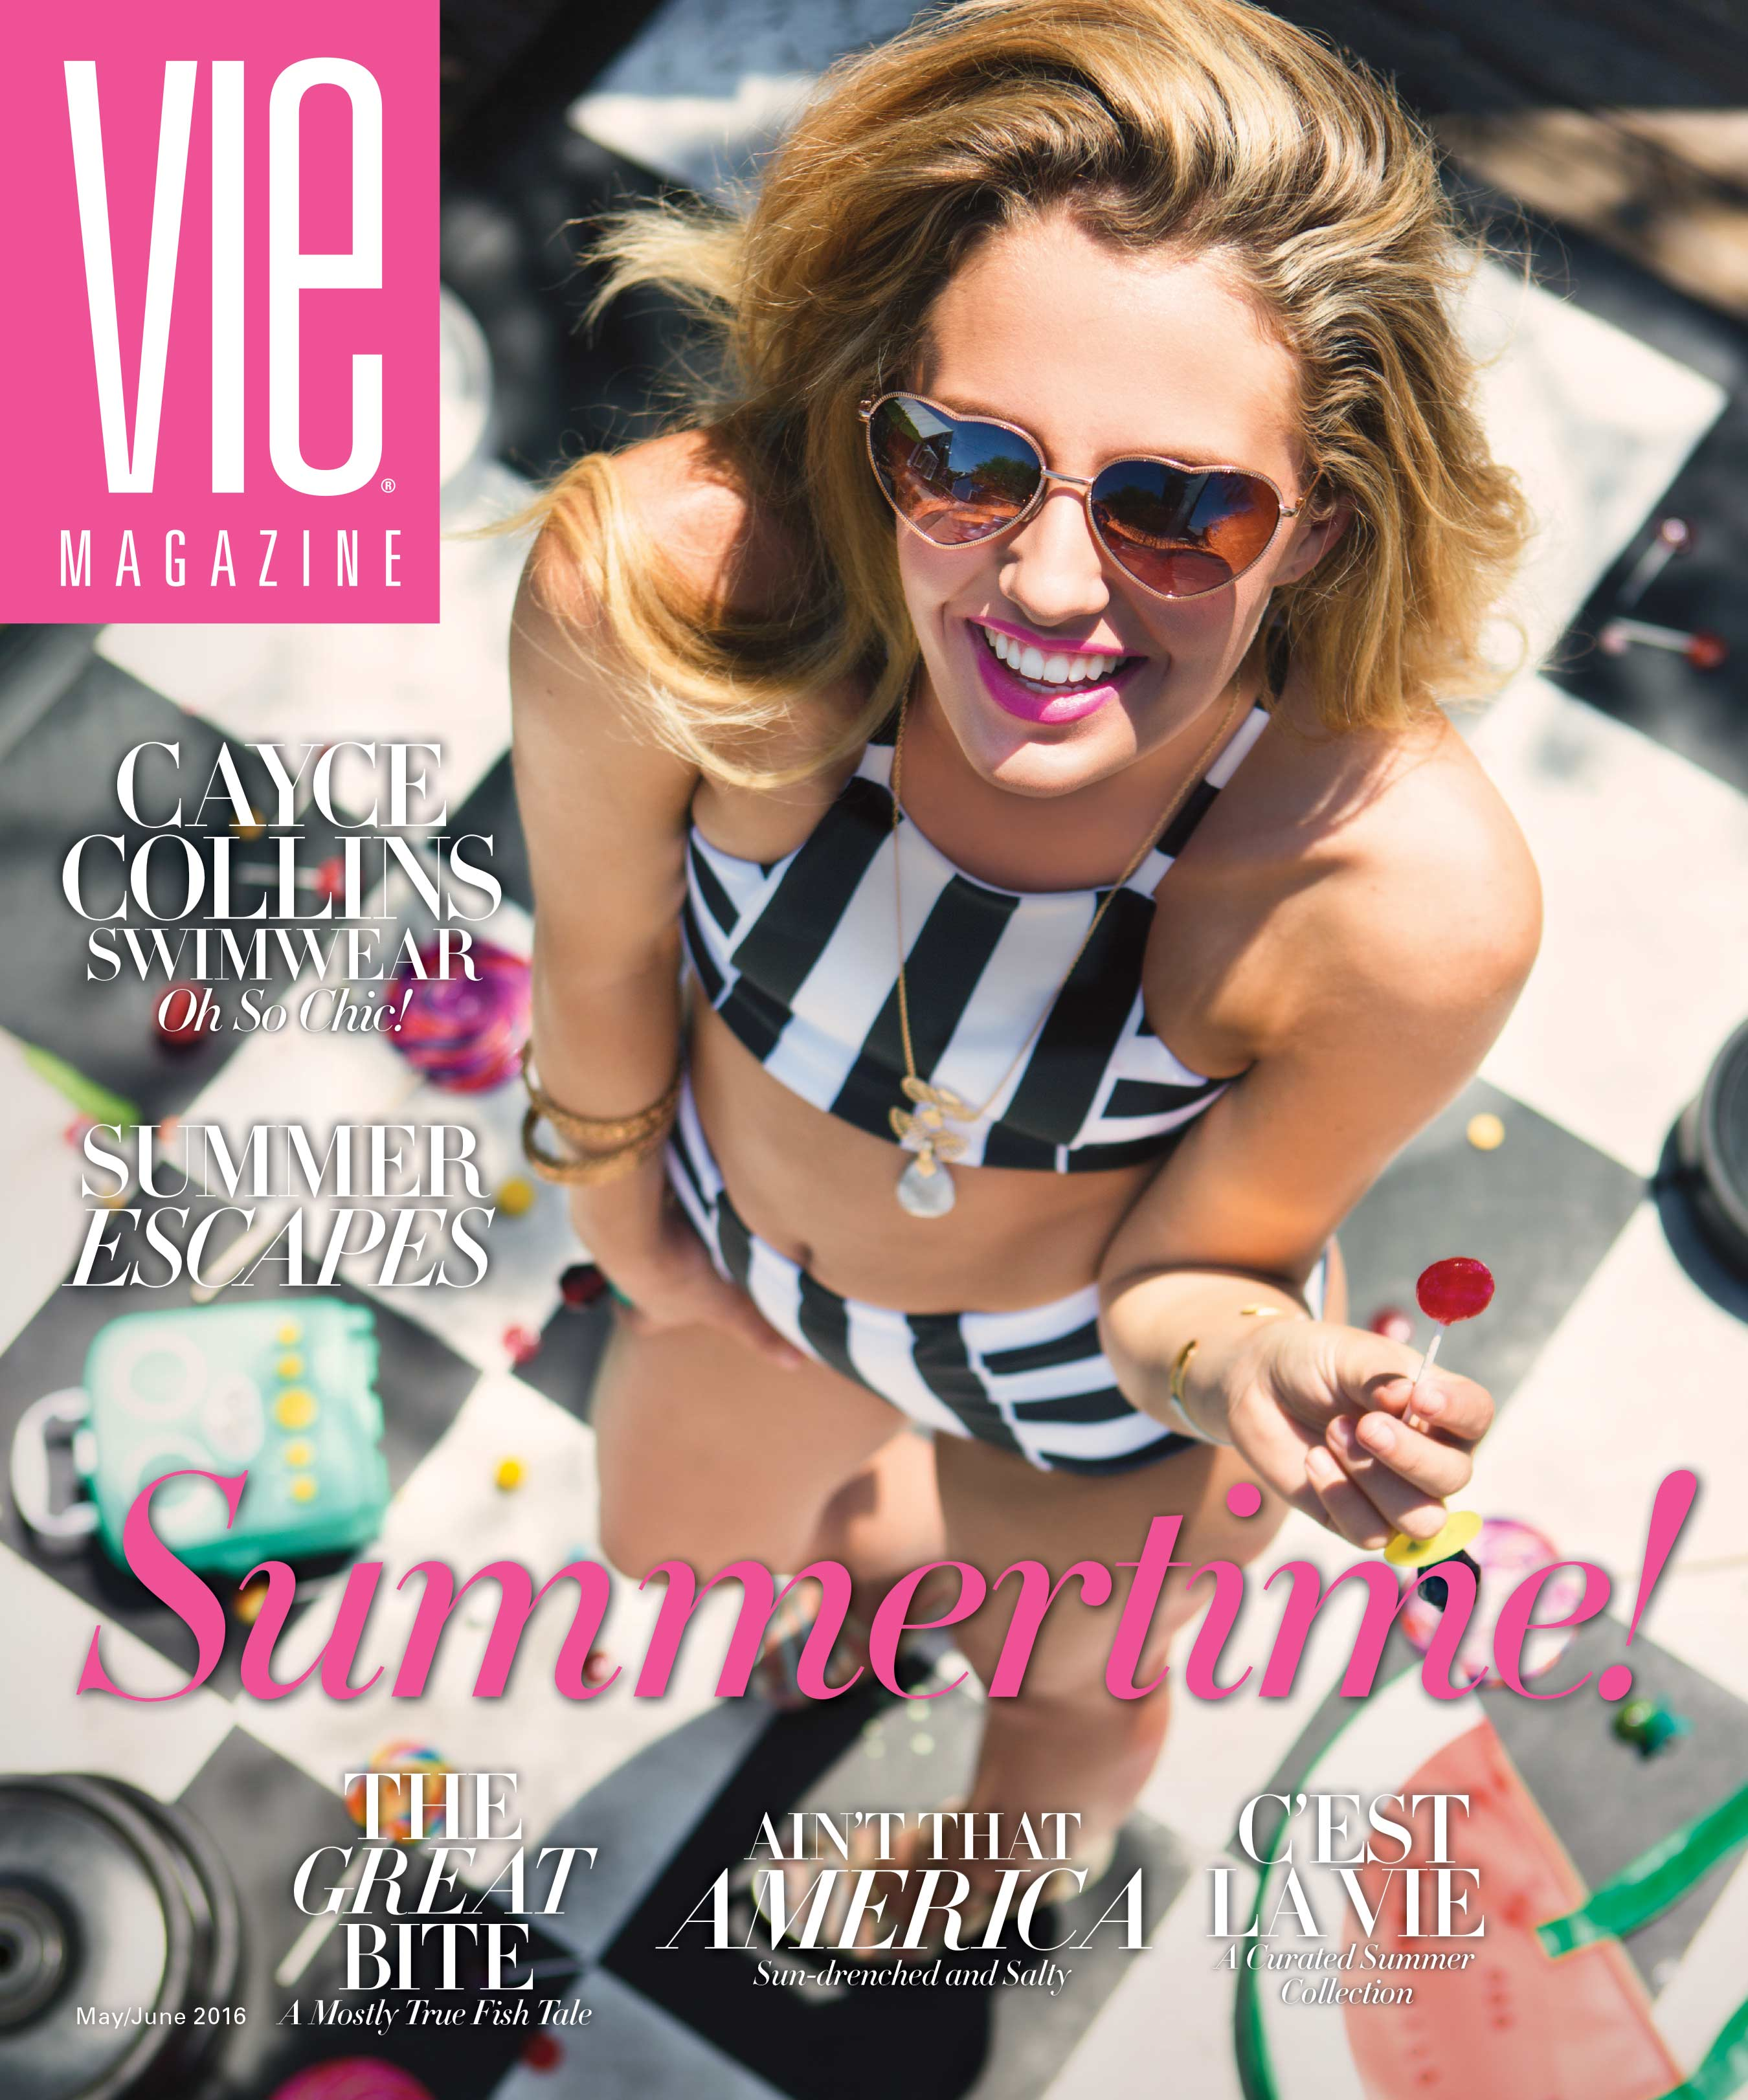 VIE magazine May June 2016 Summertime Issue cover